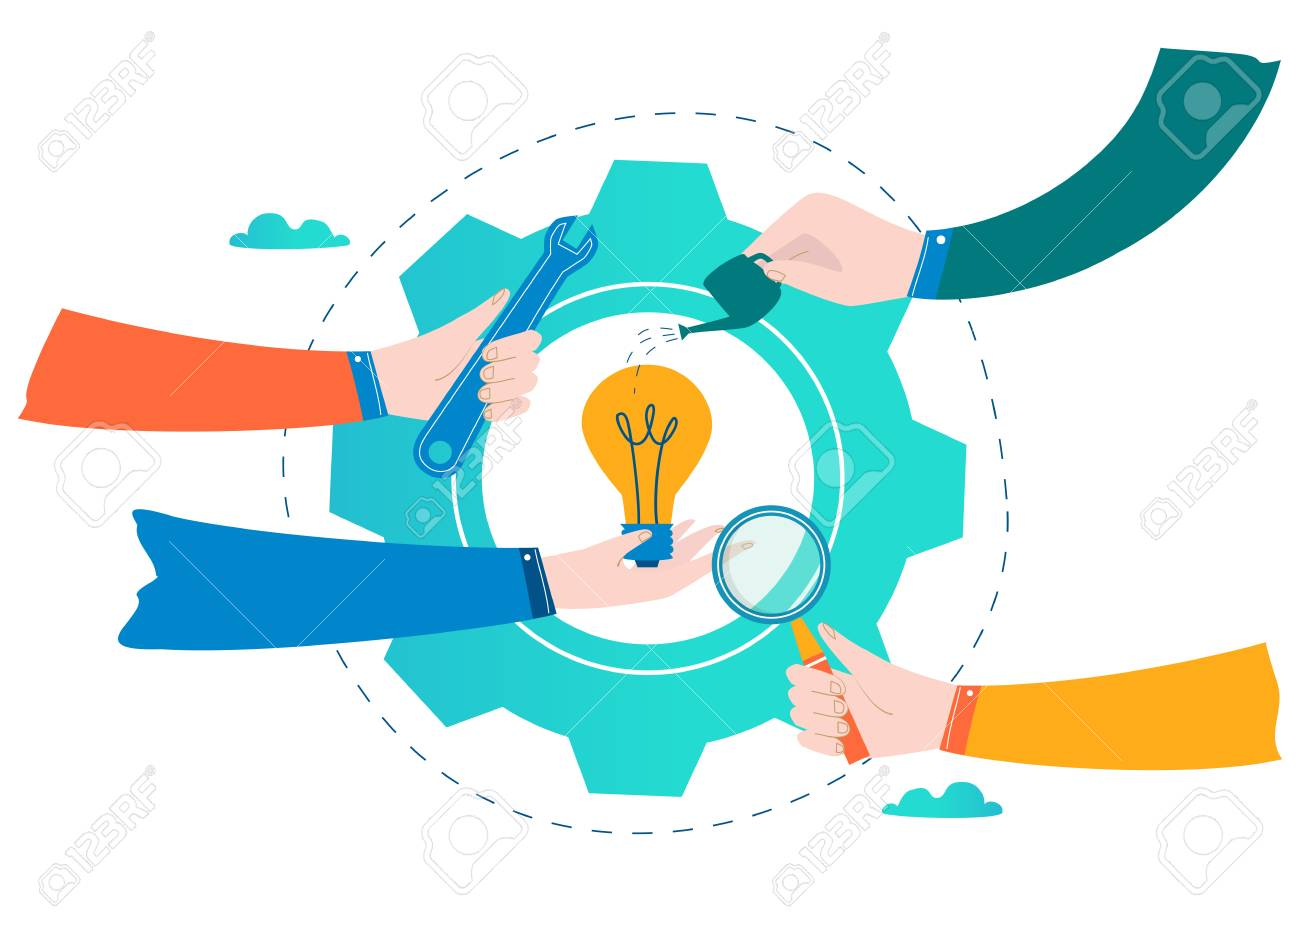 Business development, project and research, testing and improvement design for mobile and web graphics flat vector illustration - 94045439